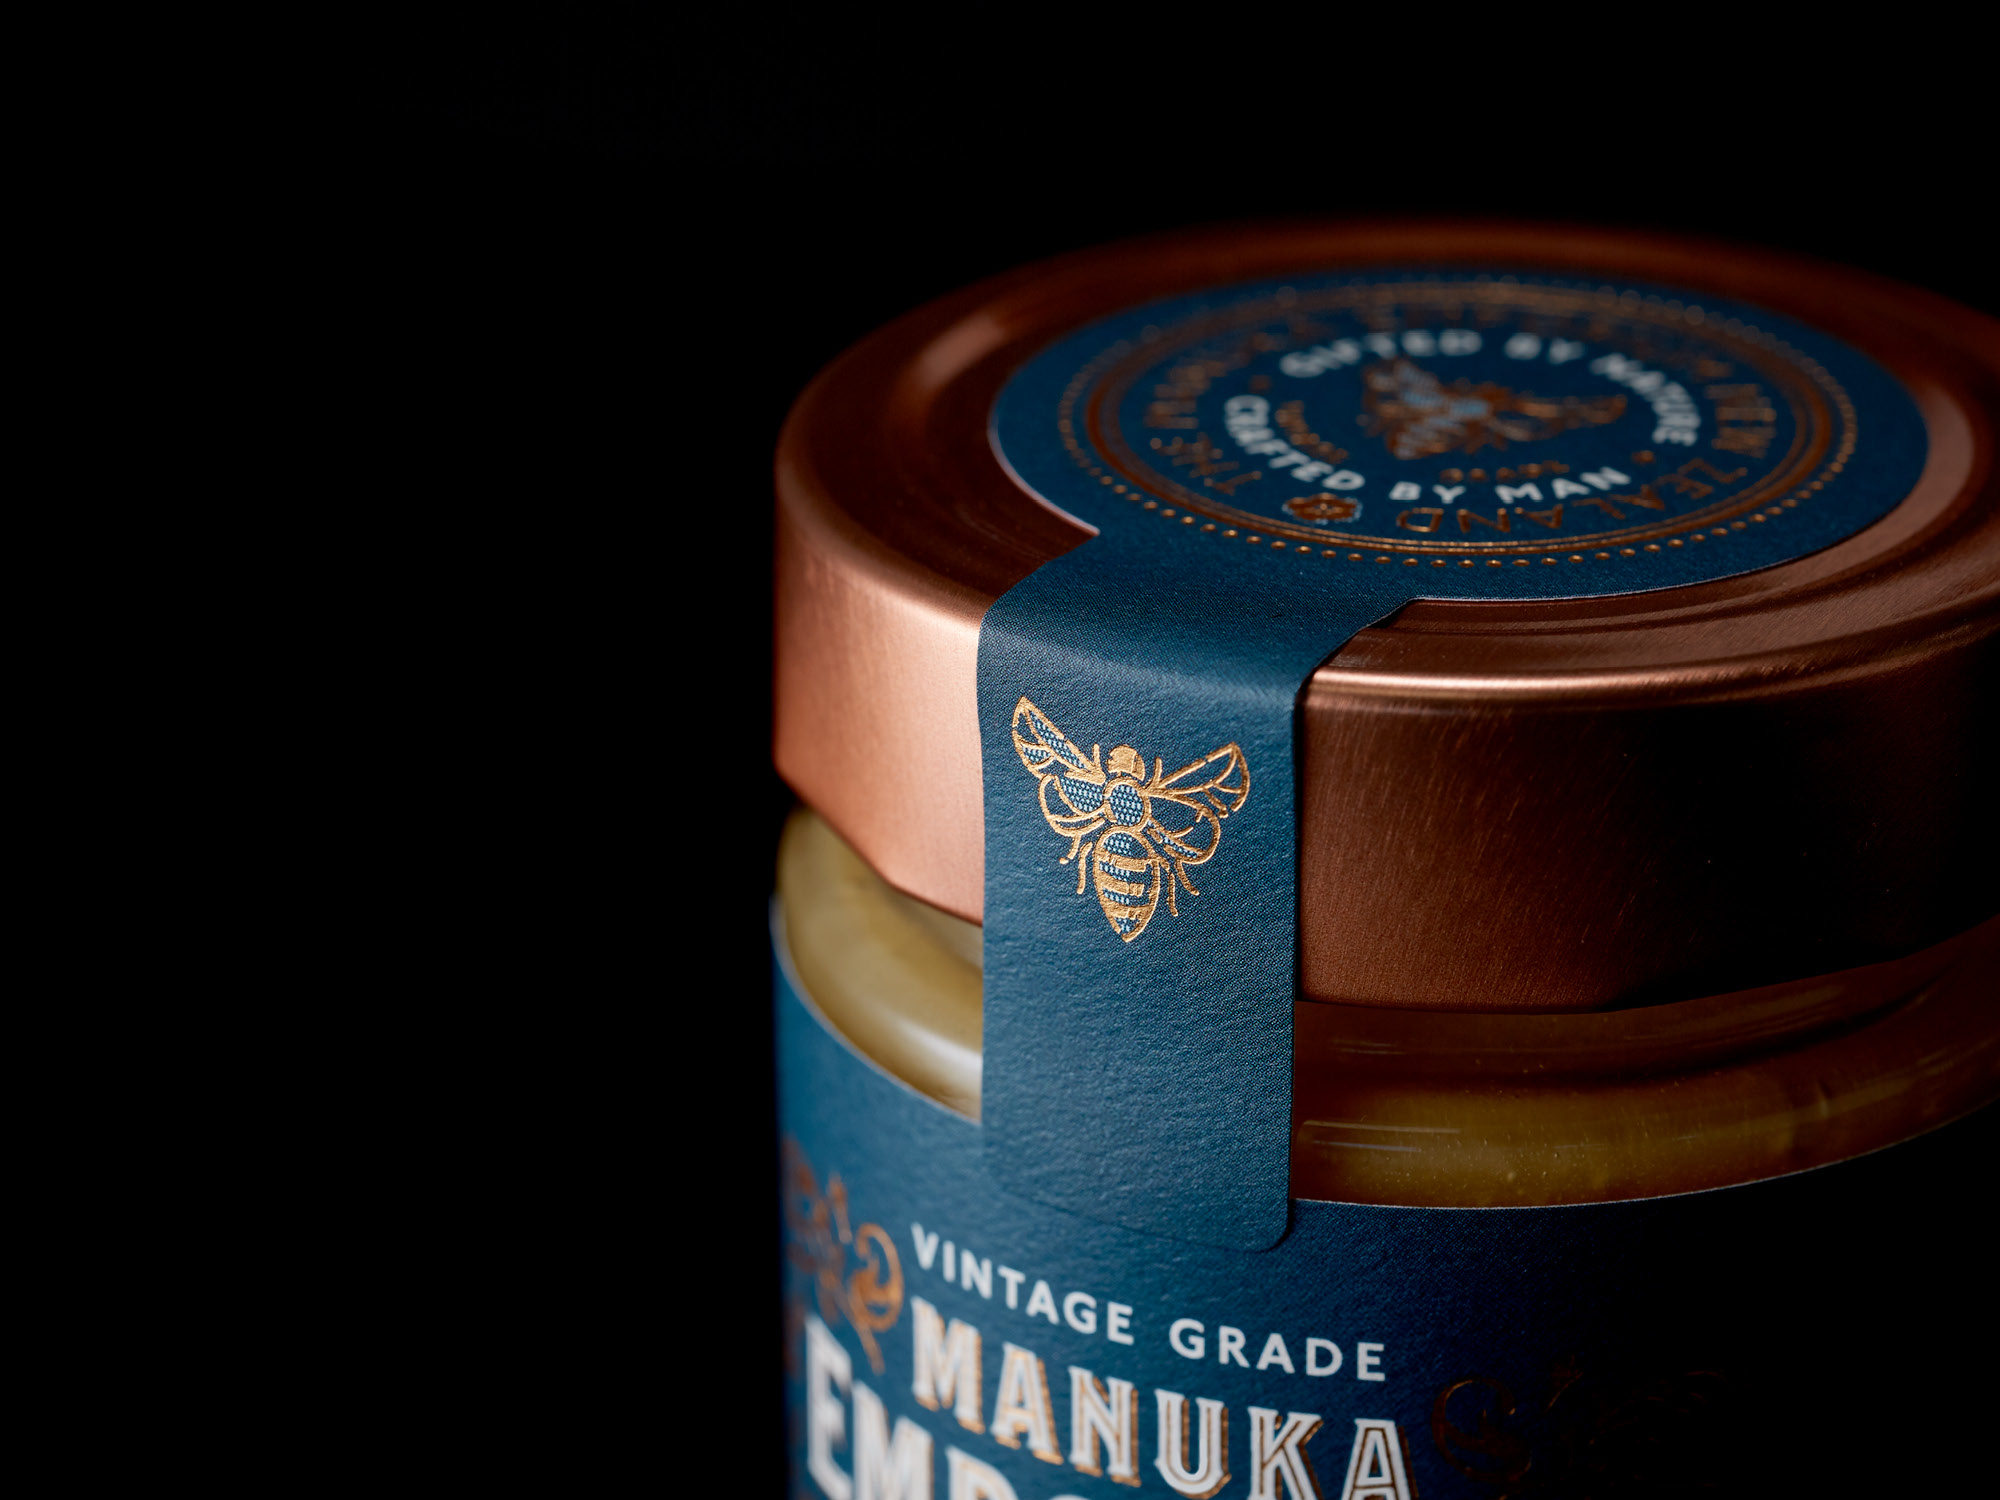 Onfire Design Manuka Emporium Honey Packaging Branding Design 15